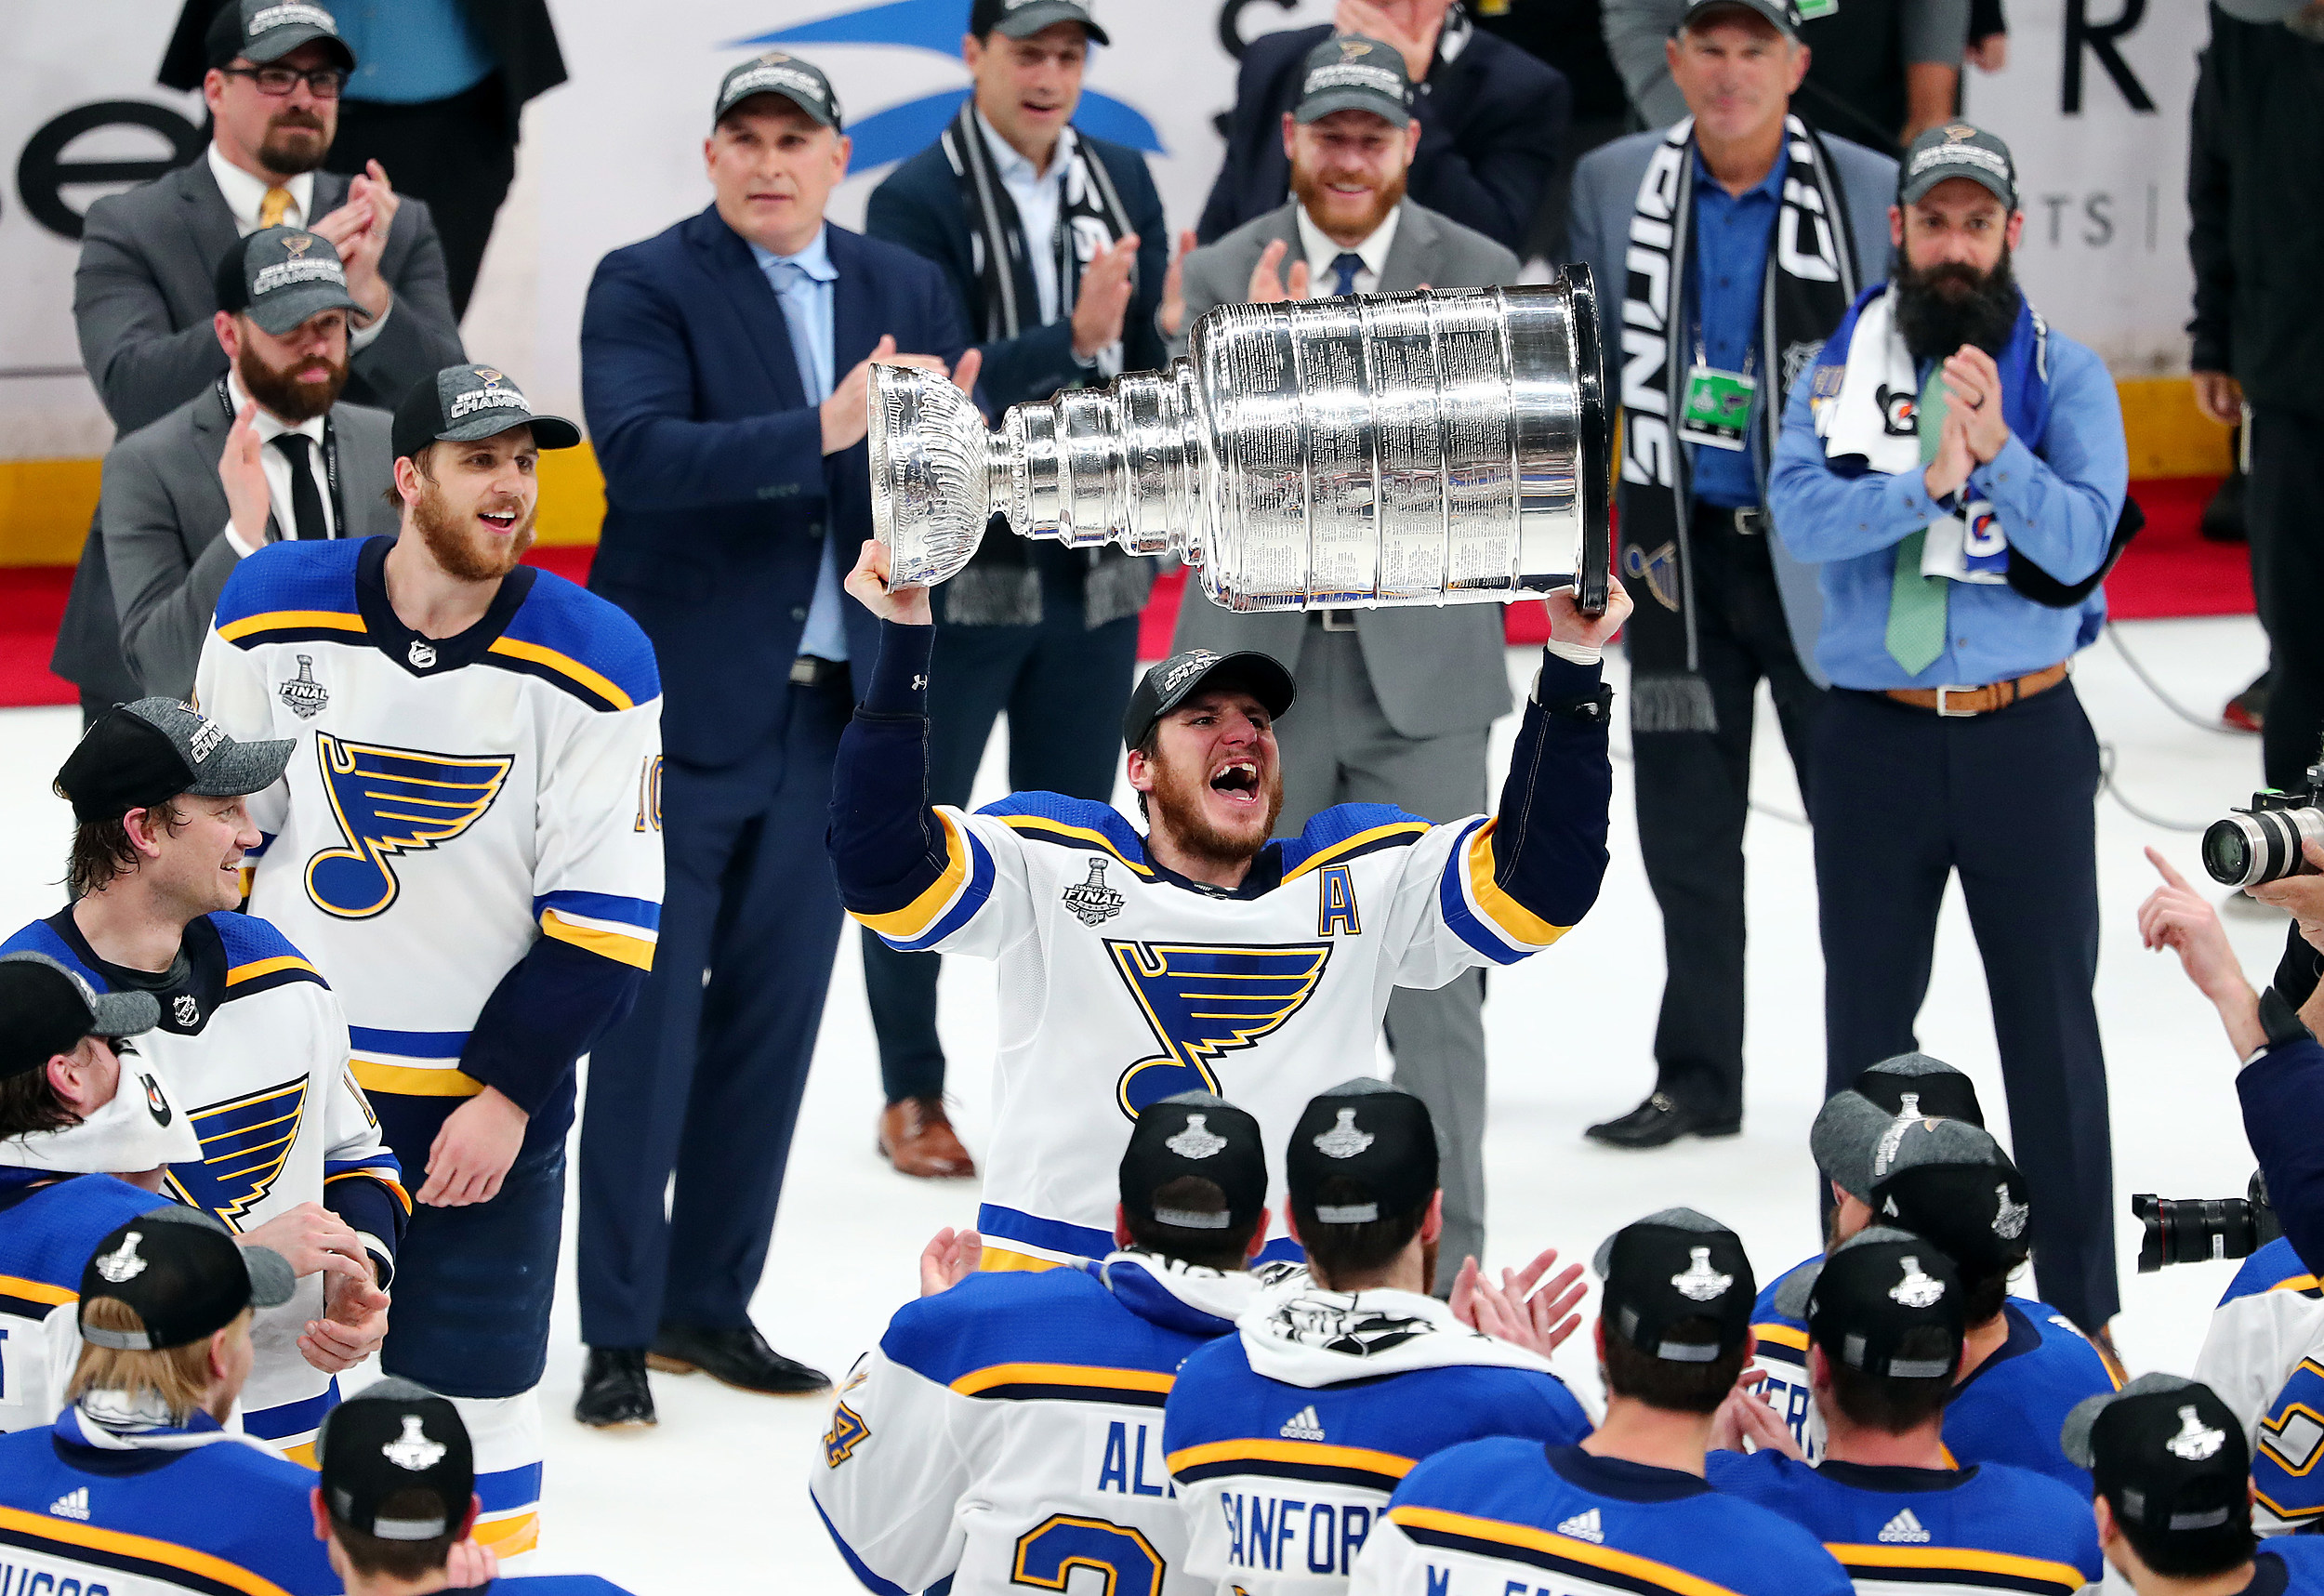 St Louis Blues Lock Down Games To Win Stanley Cup